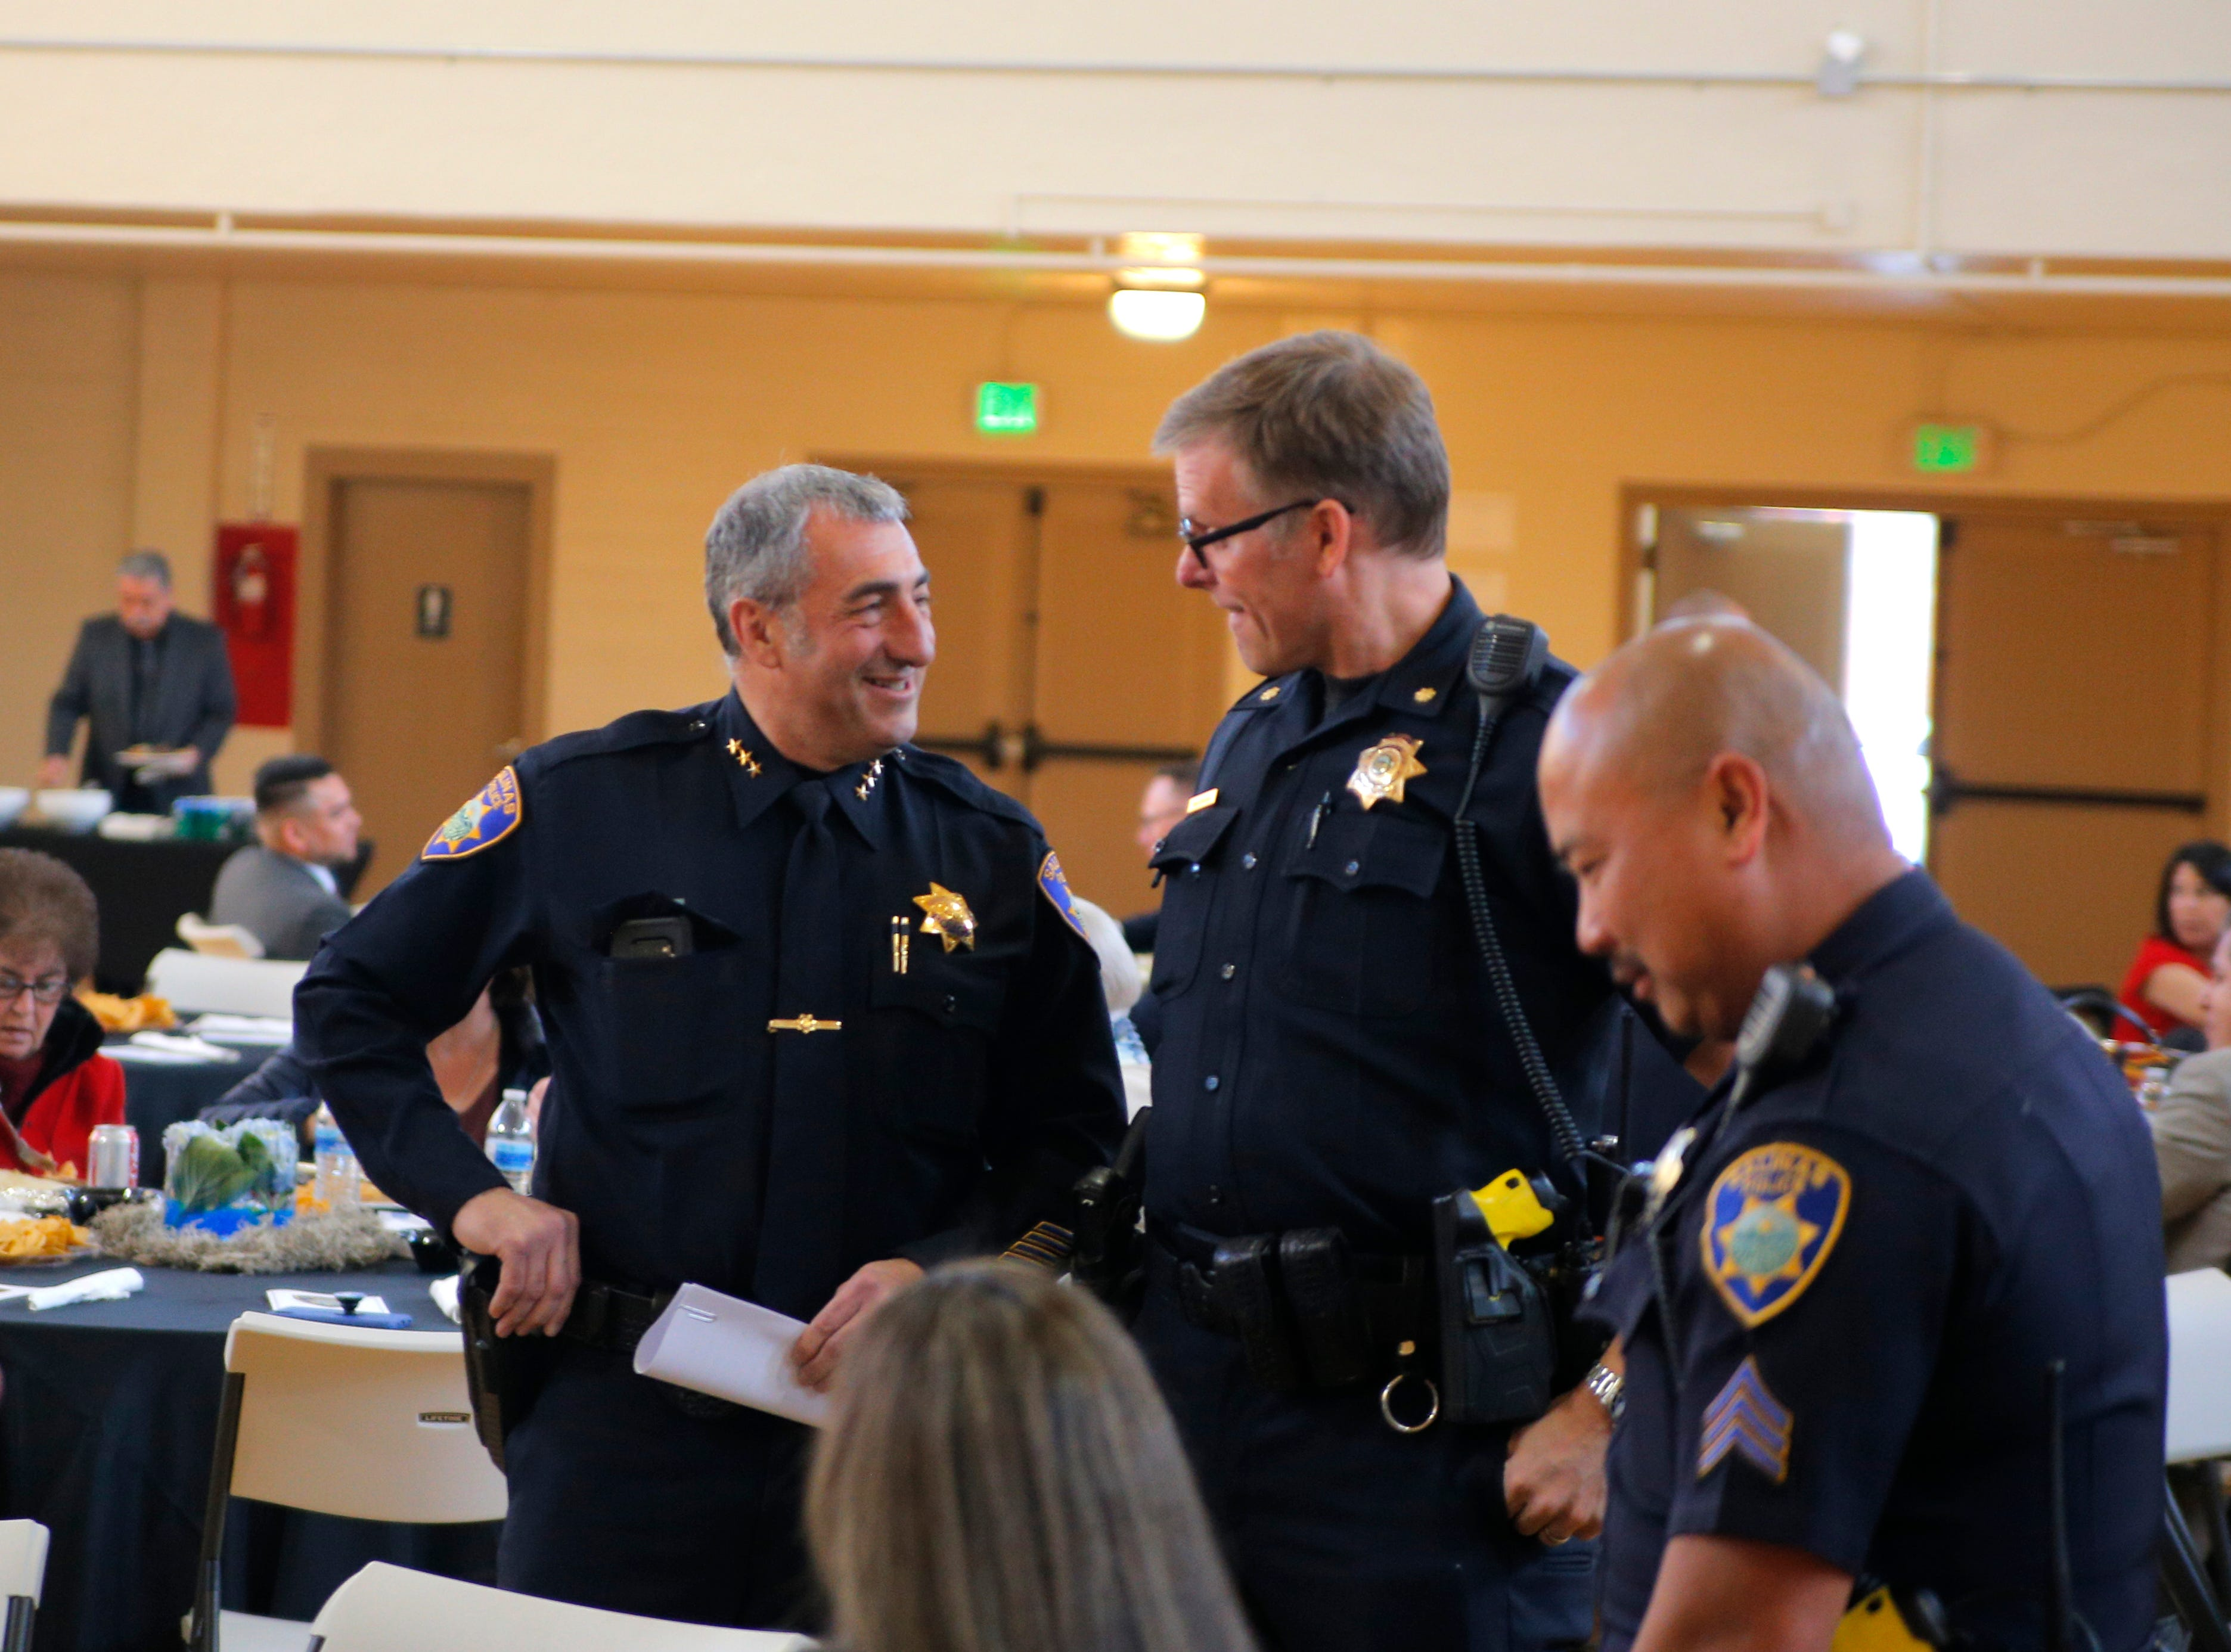 Salinas Police Asst. Chief Roberto Filice (left) speaks with Cmdr. Vince Maiorana at the department's 2018 awards ceremony March 14, 2019.